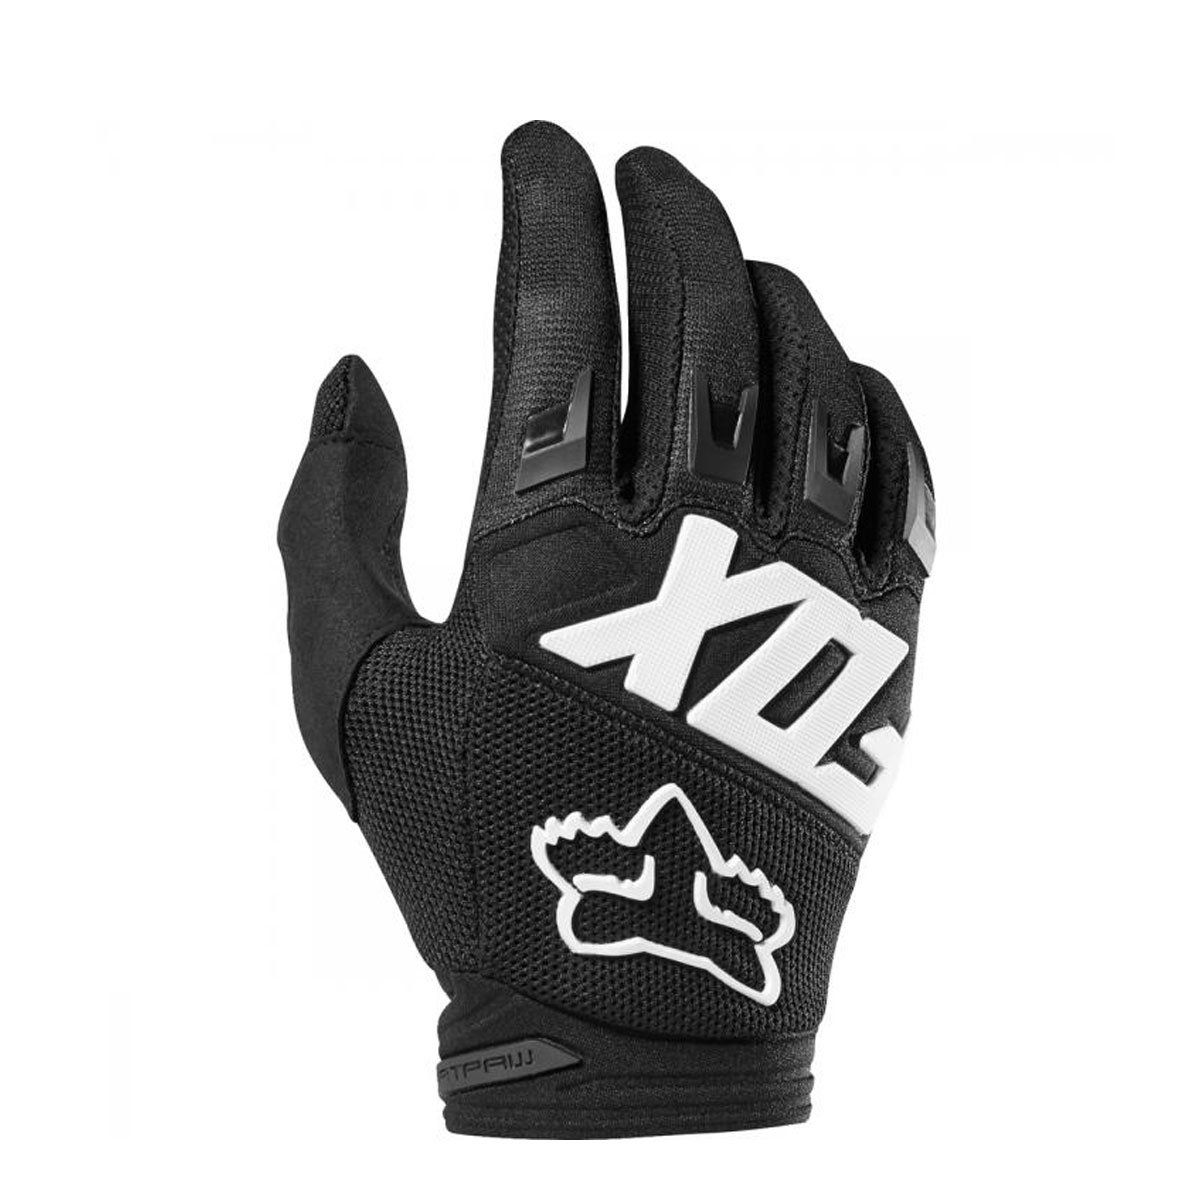 Luva de Motocross Fox Dirtpaw Race 18 Black